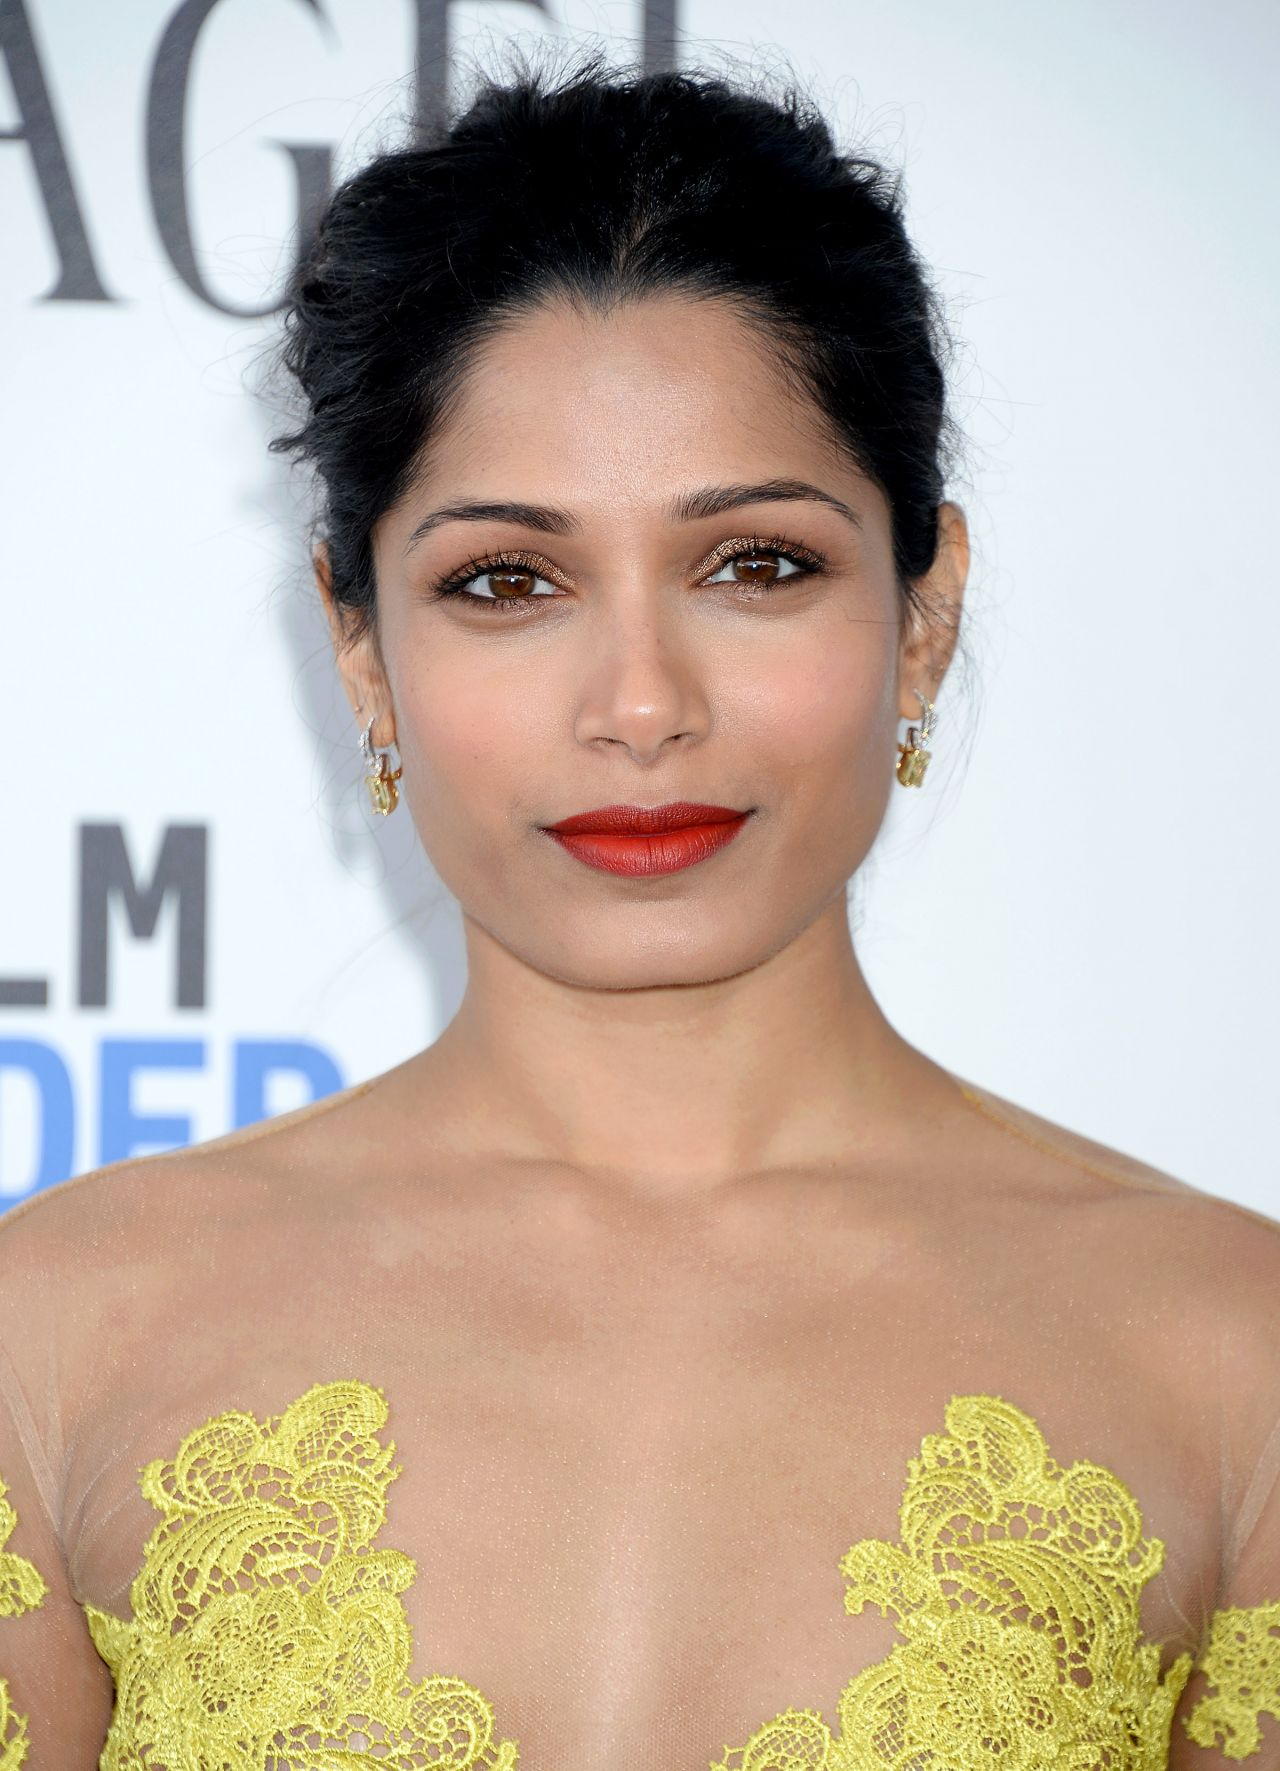 Freida Pinto Latest Photos - Page 2 of 7 - CelebMafia Freida Pinto